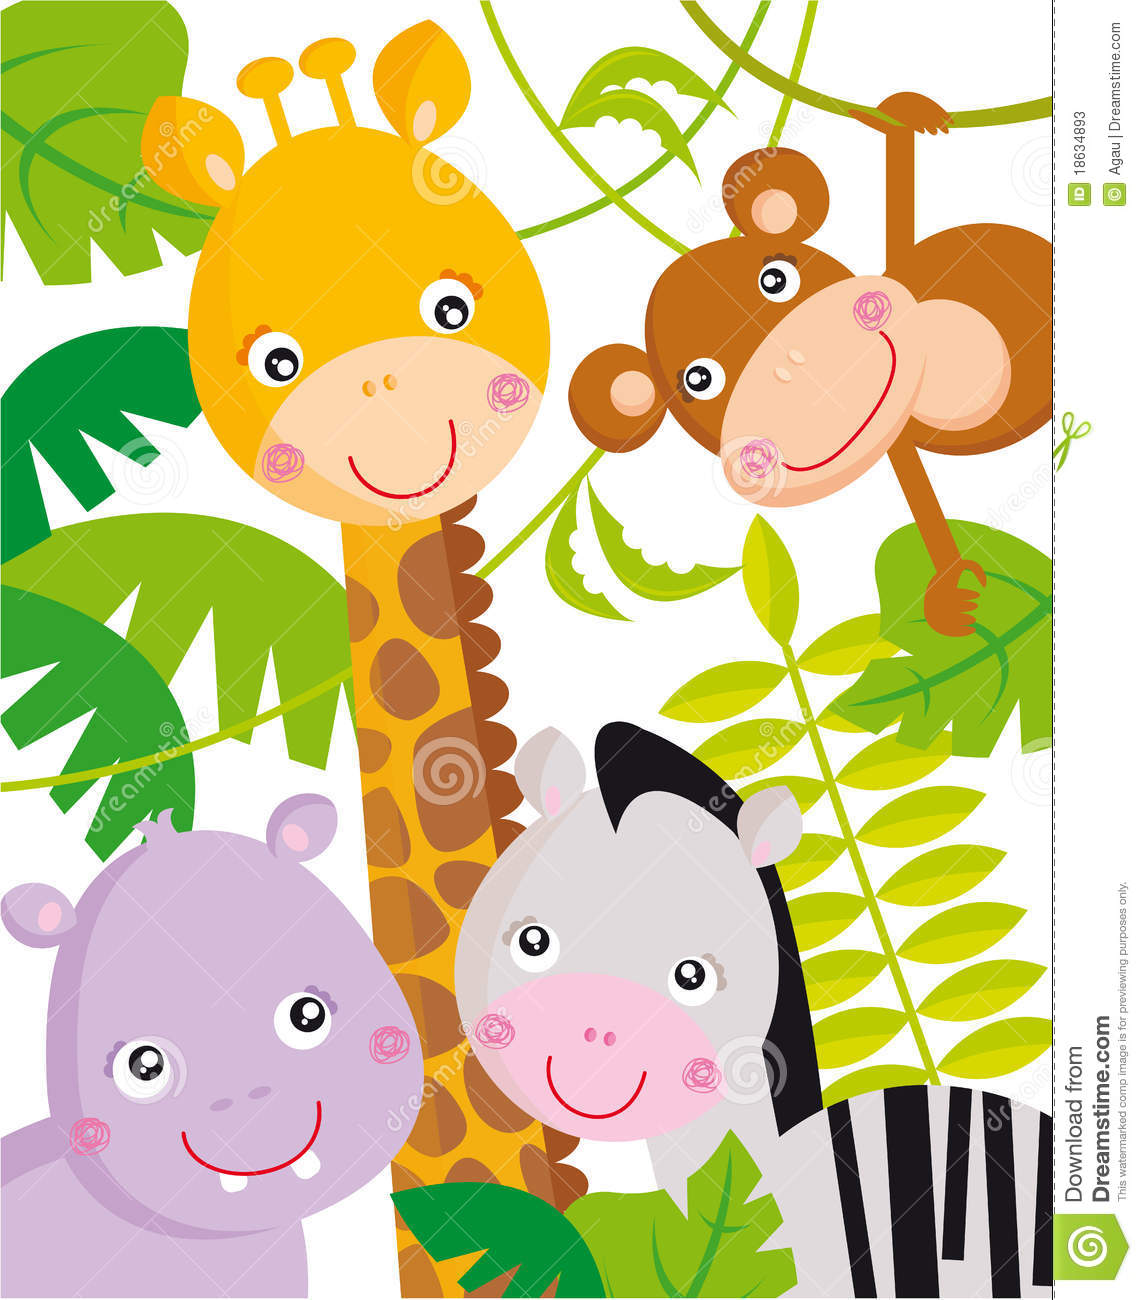 Animal baby clipart jungle PNG and cliparts for Free Download.